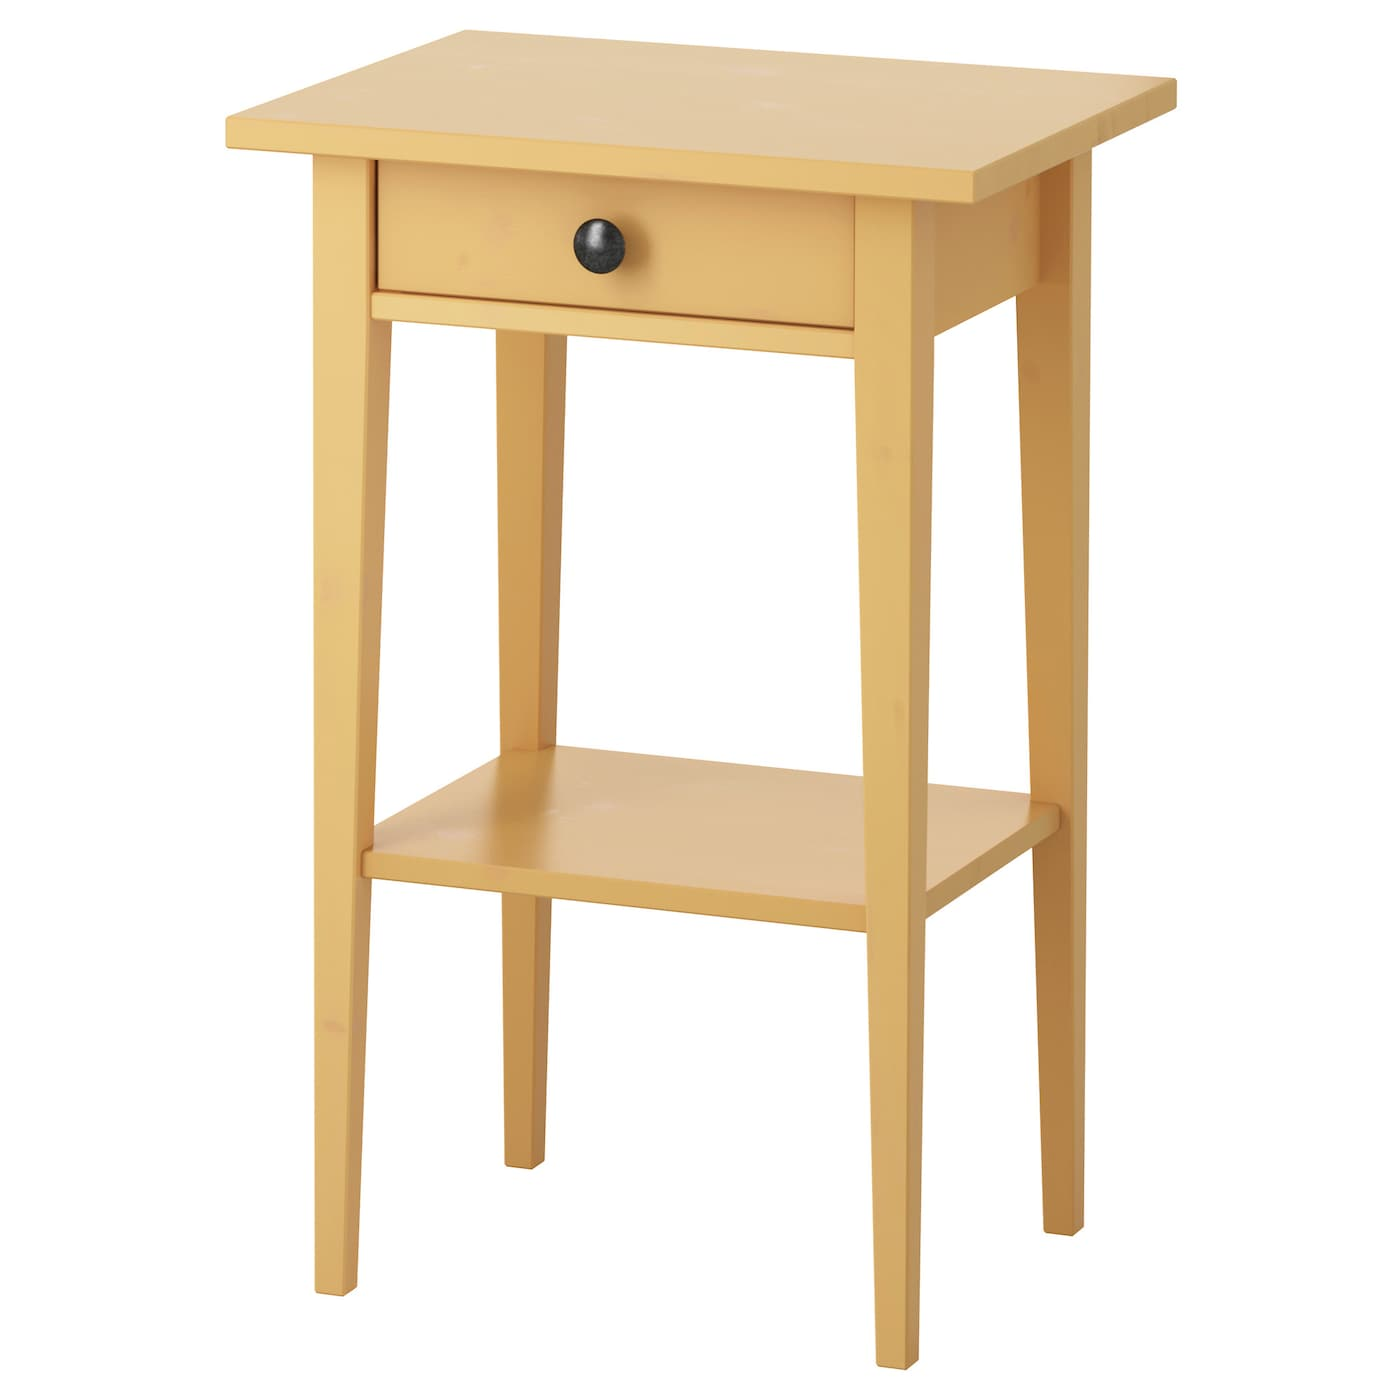 Hemnes bedside table yellow 46x35 cm ikea - Bedside table ...